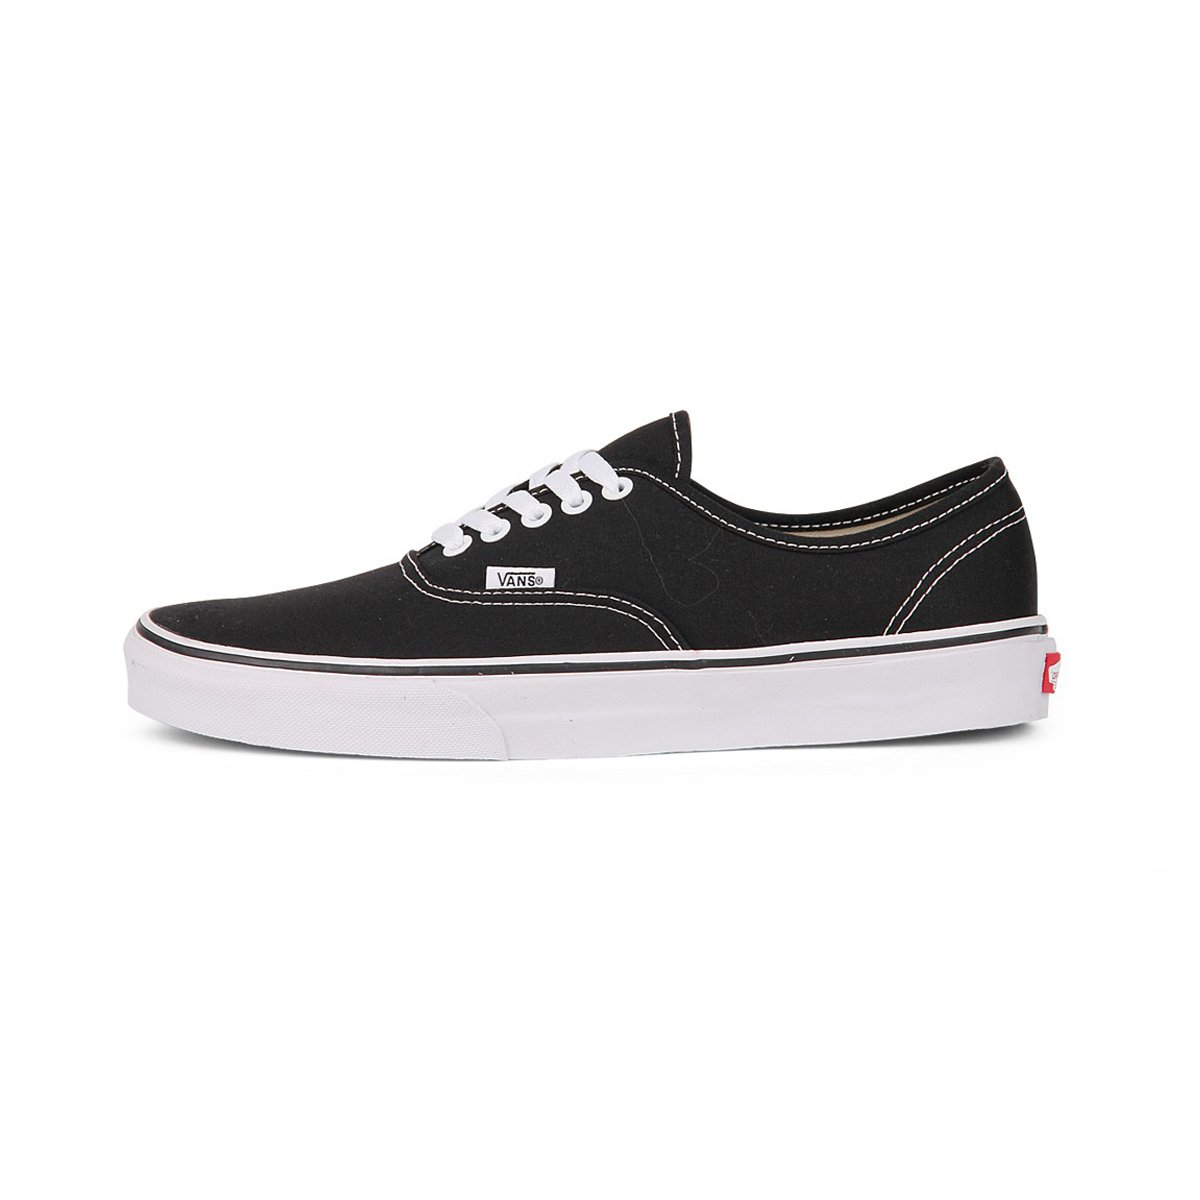 vans_authentic_black_vn-0_ee3blk